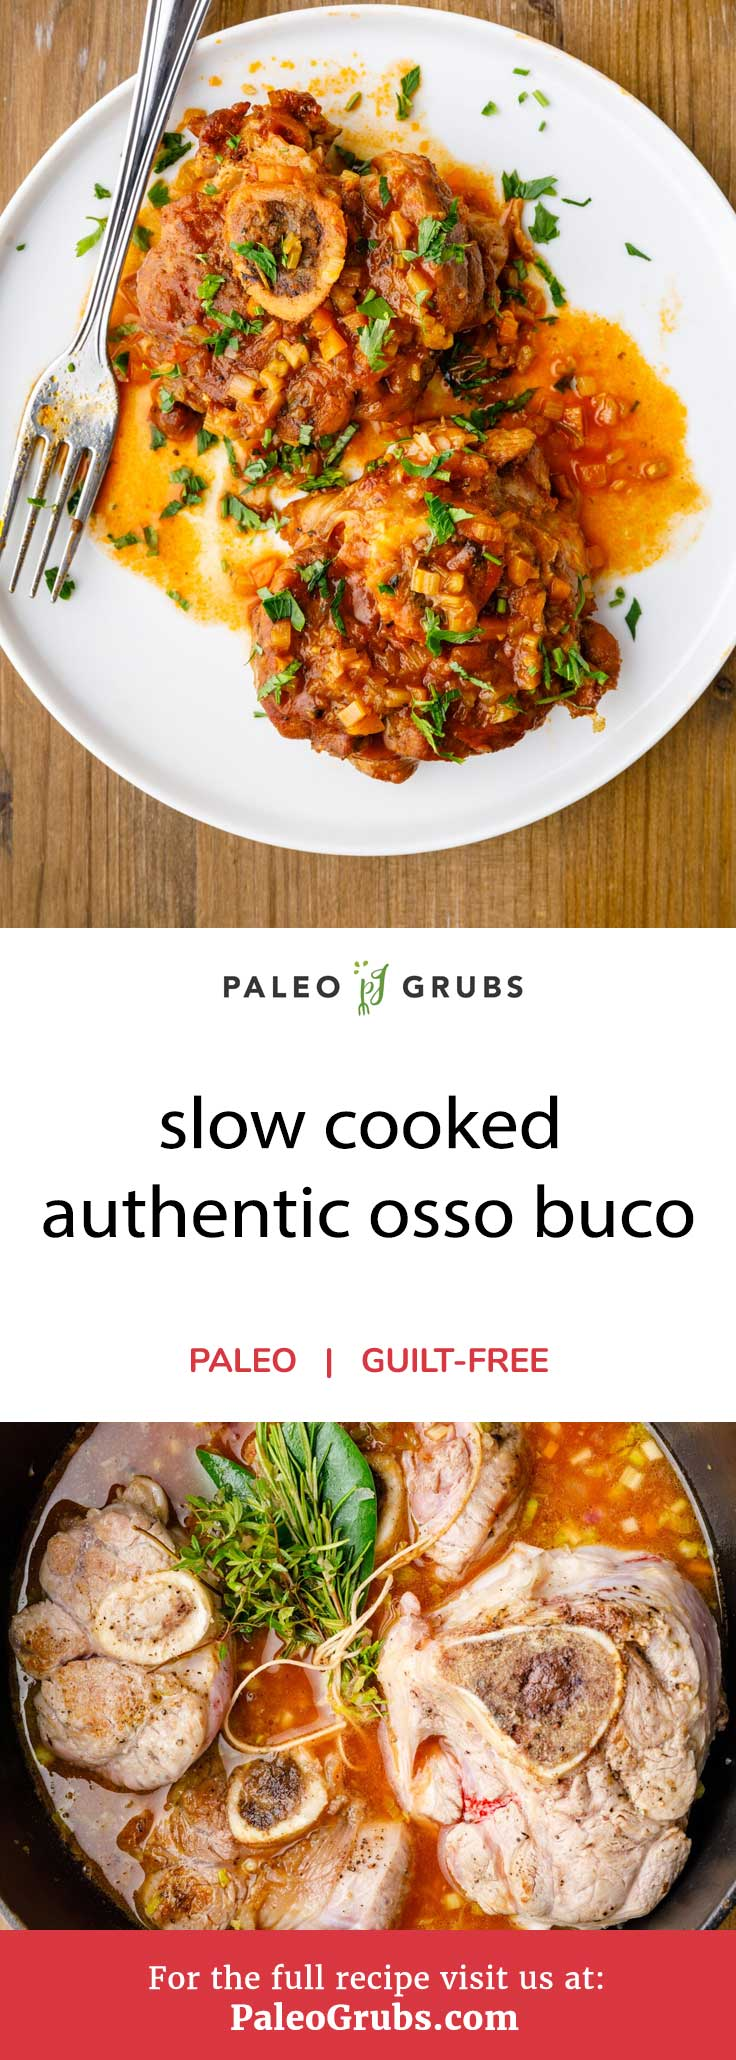 Osso buco is a delectable meal from Milan, featuring juicy pieces of veal shanks that have been cooked in a delicious mixture of vegetables, broth, and traditionally, wine. This recipe makes it a touch more paleo-friendly by leaving the wine out of the equation and replacing it with apple cider vinegar, while still keeping every other delicious ingredient that you would expect to find in a good osso buco dish.